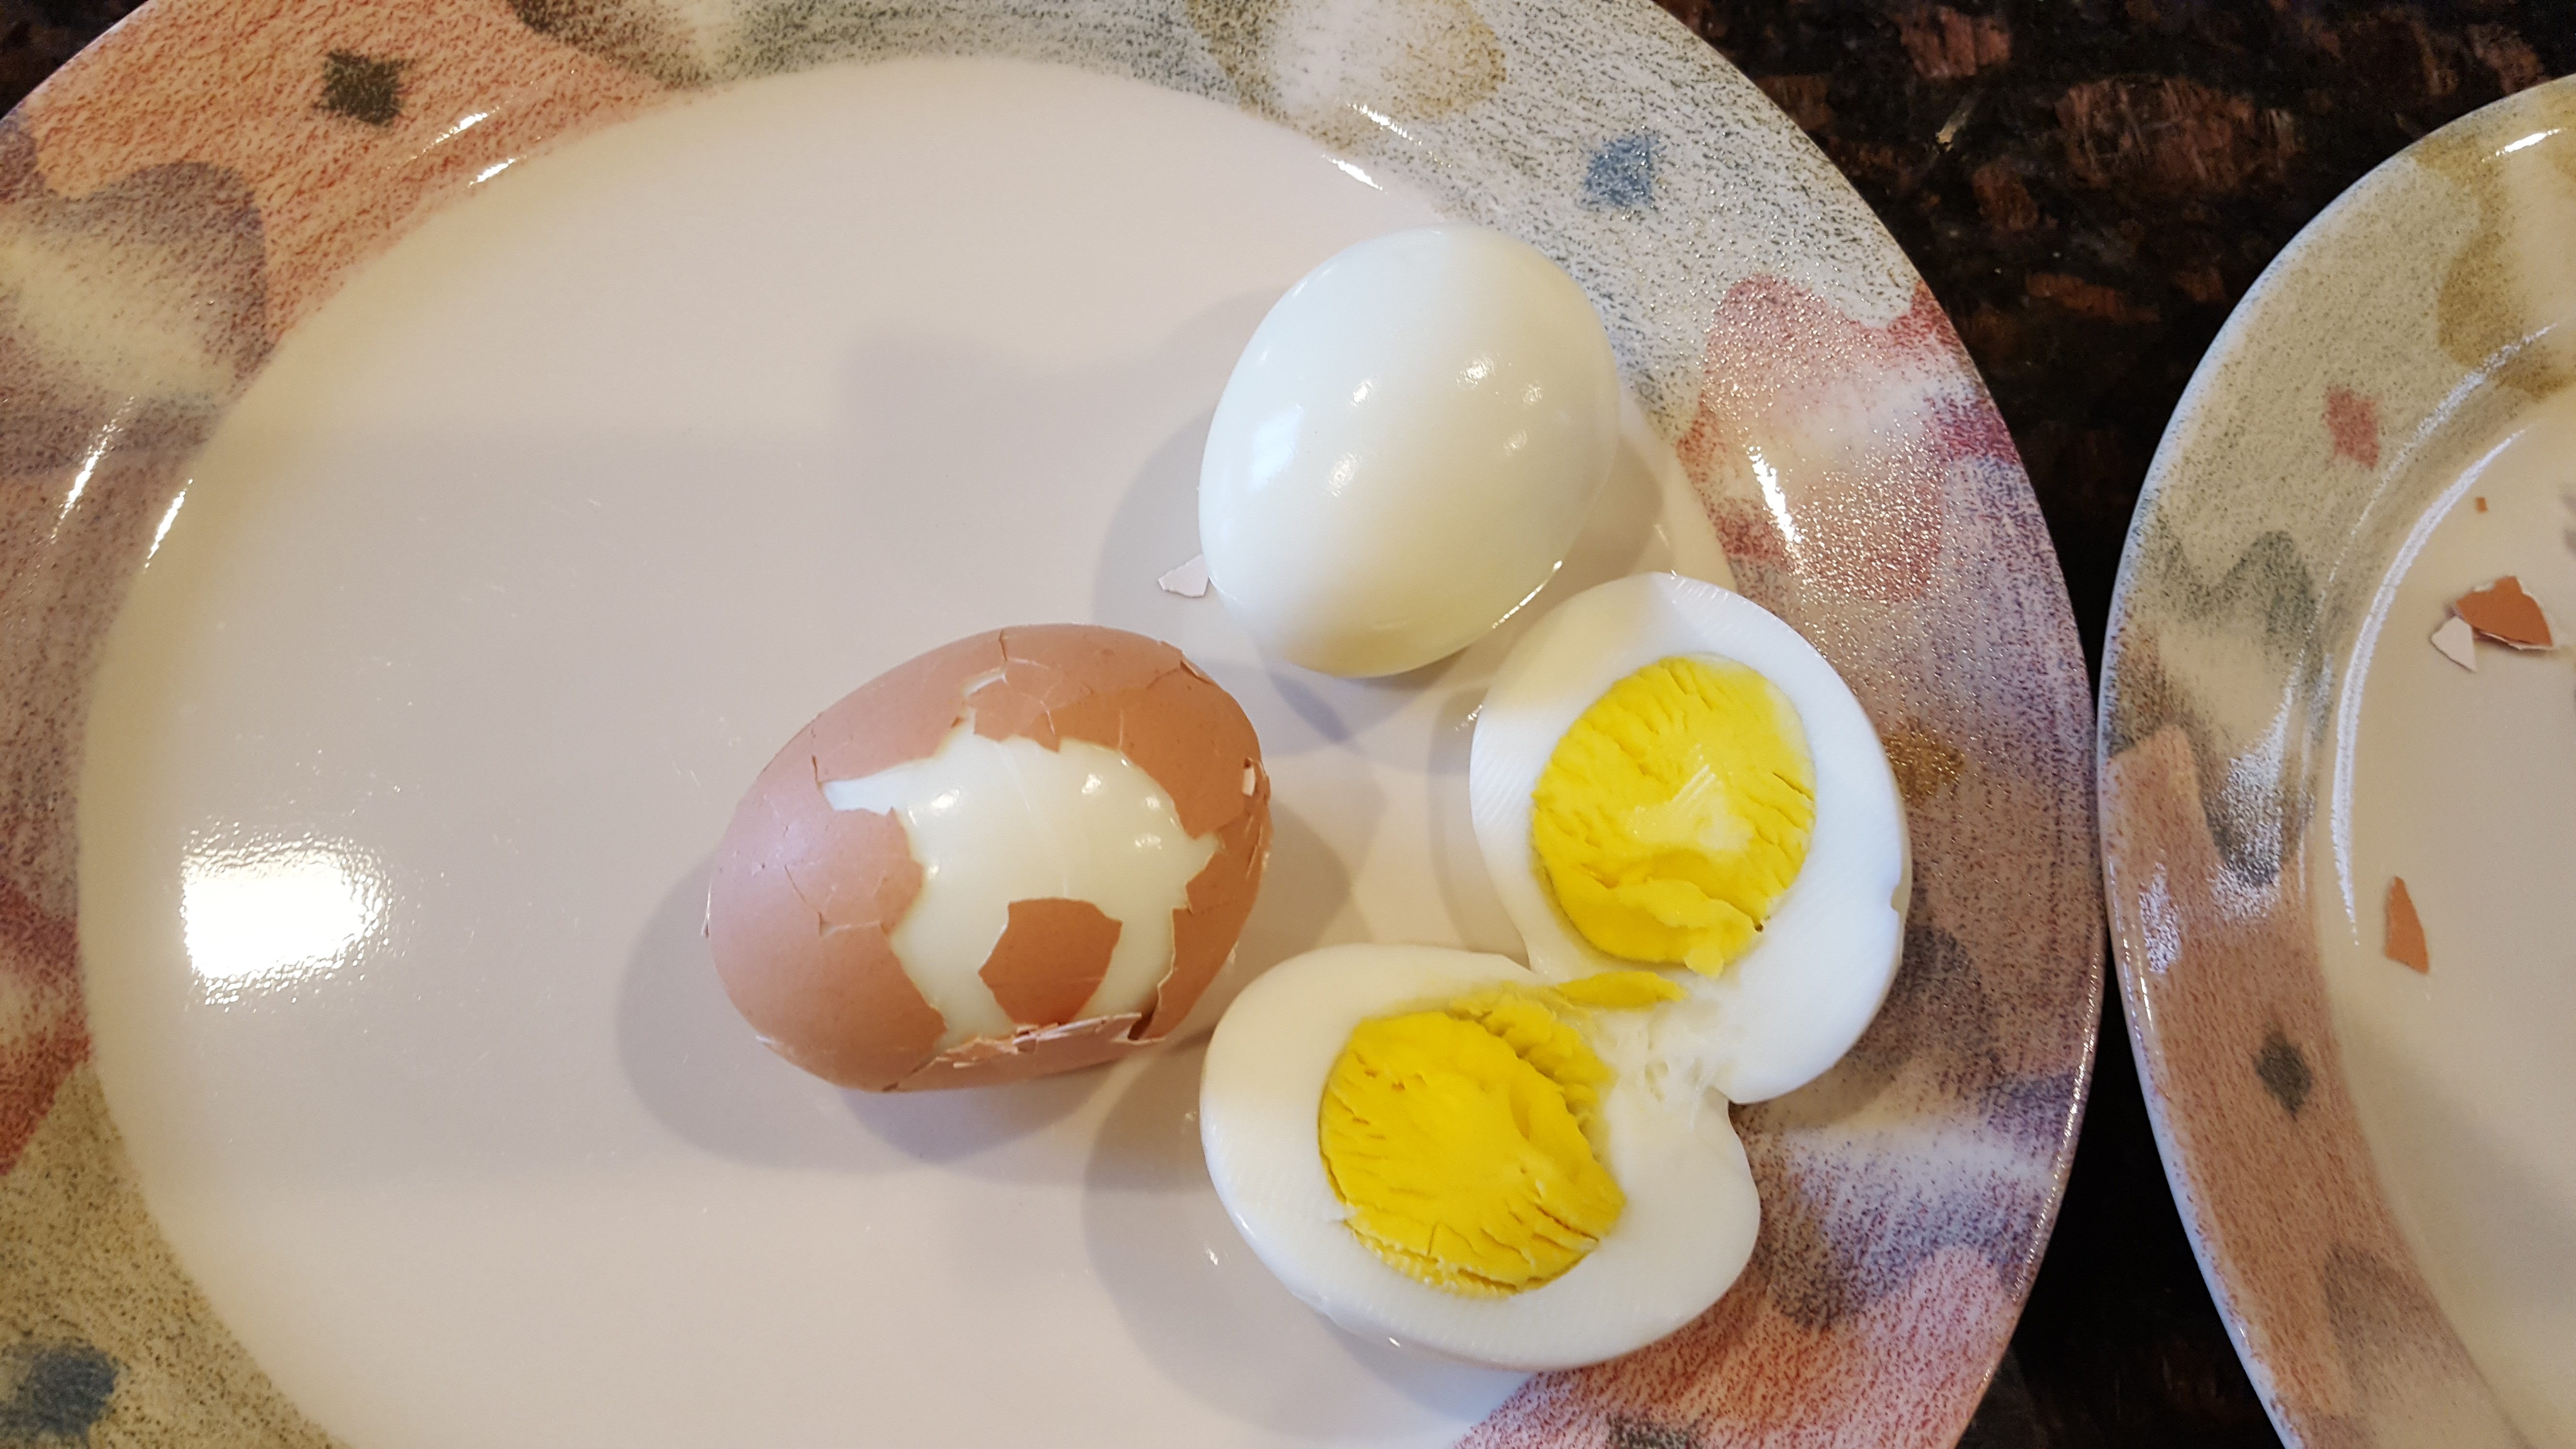 How to make perfect hard boiled eggs recipe genius kitchen it made hard boiled eggs as they should be easy ccuart Images